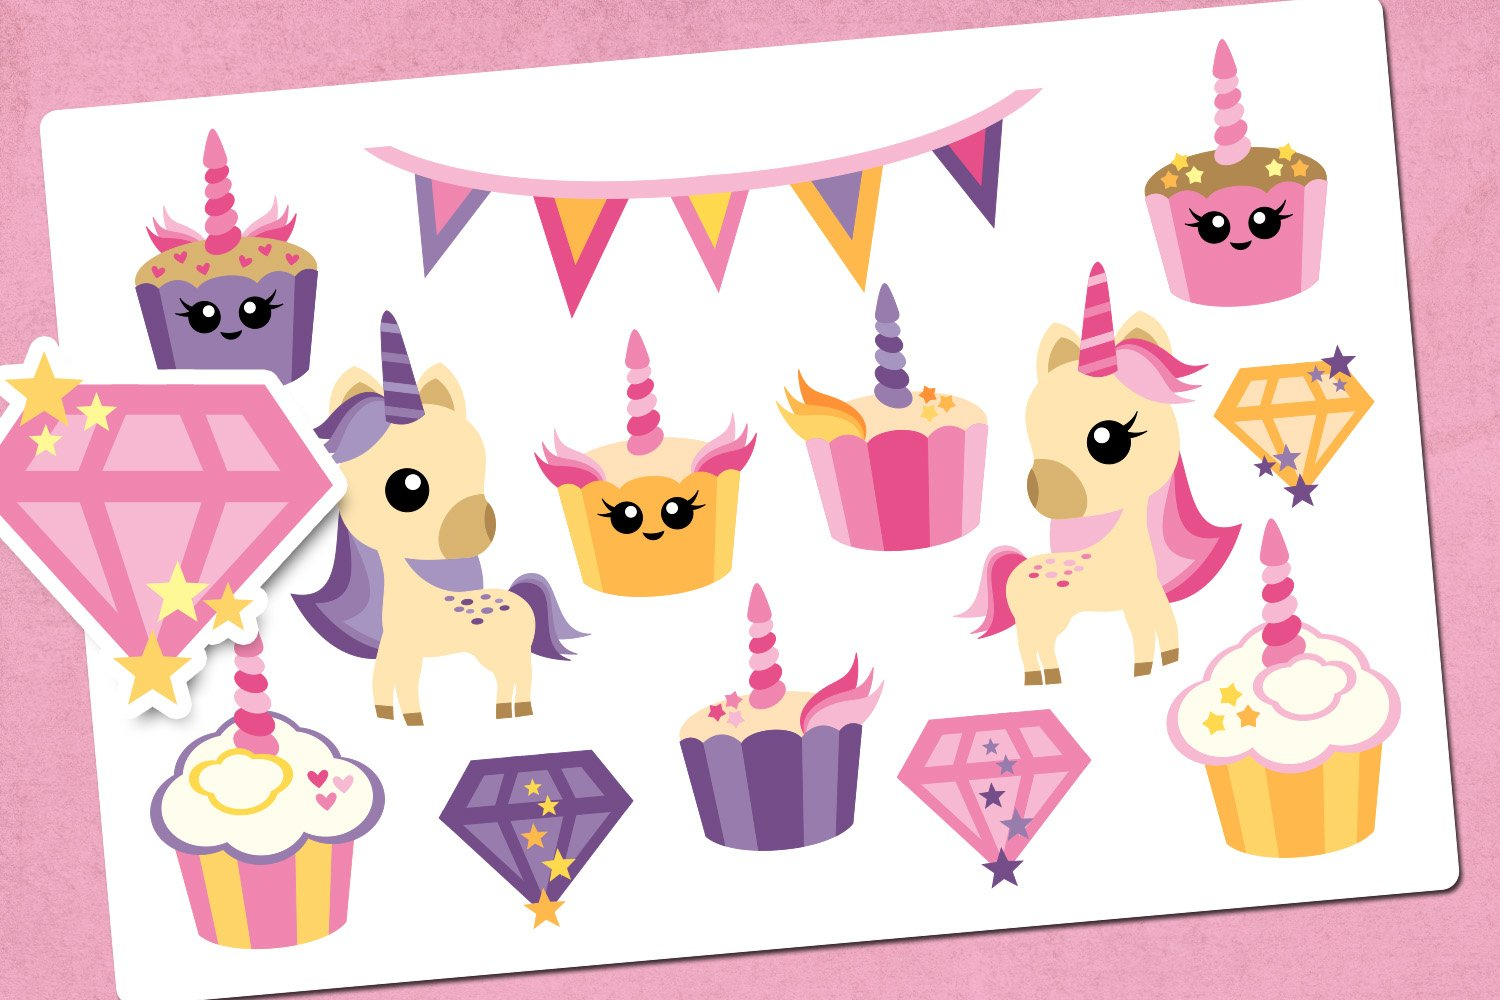 Unicorn cupcakes party illustrations example image 1